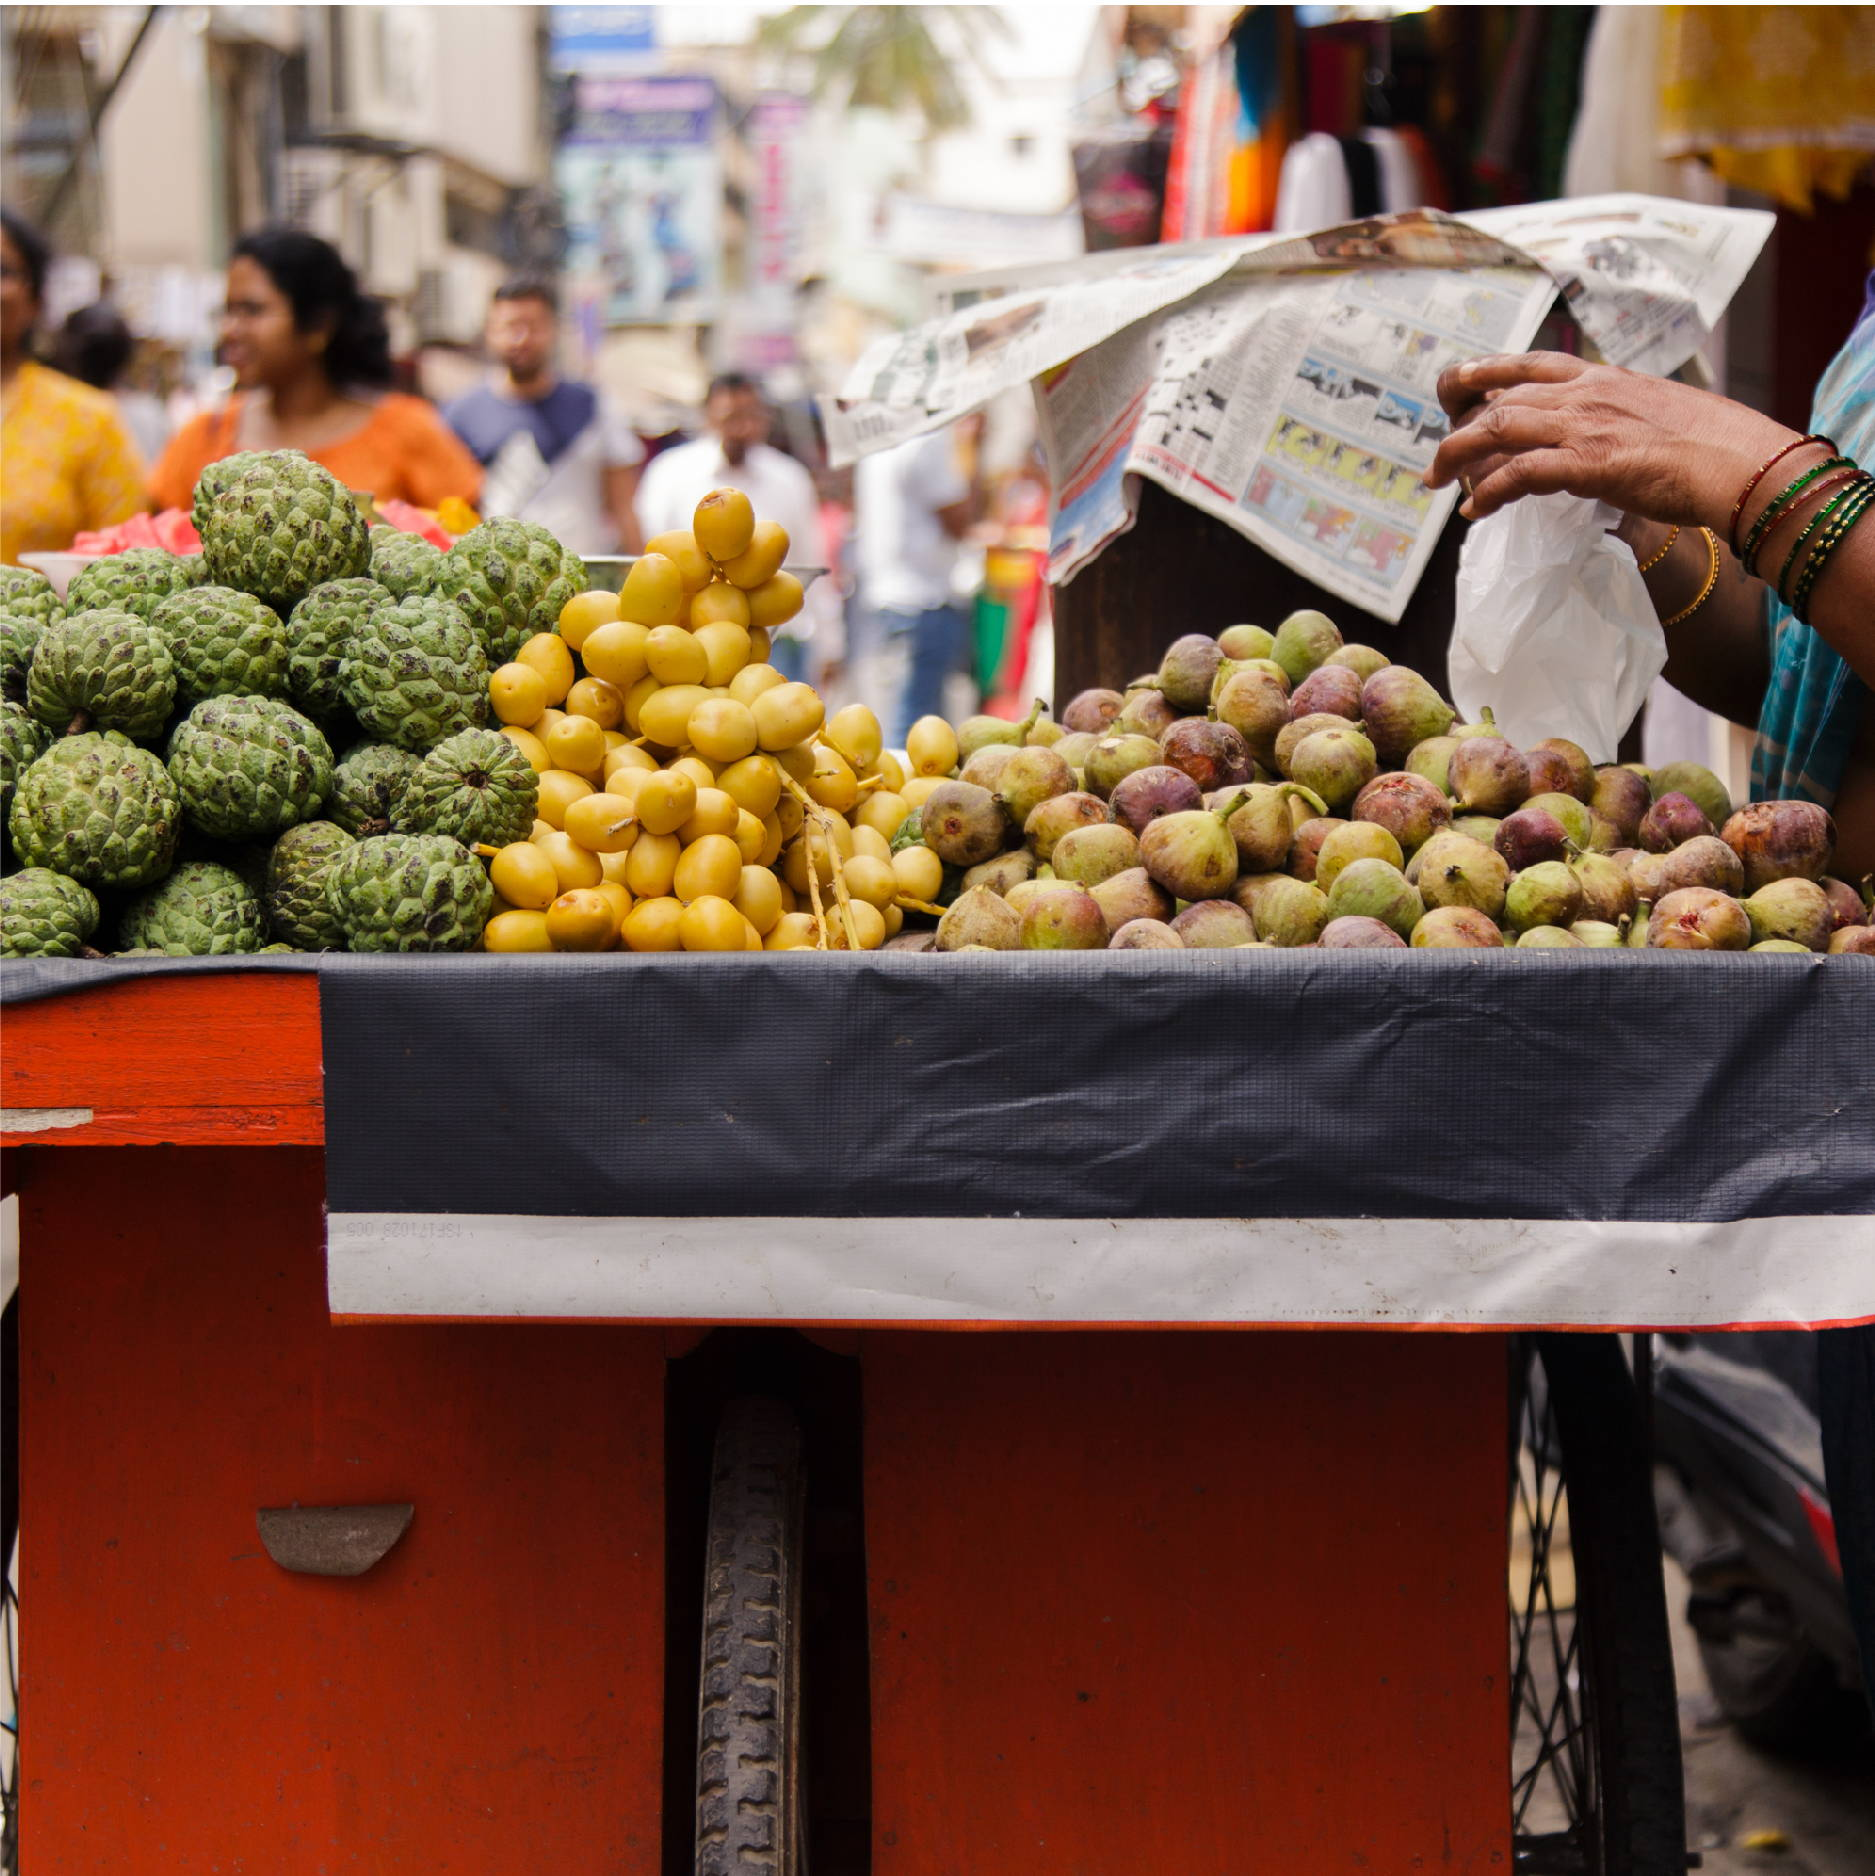 A street vendor on a crowded Bangalore India street, serves ripe figs, dates, and other fruits from her red bike-drawn cart